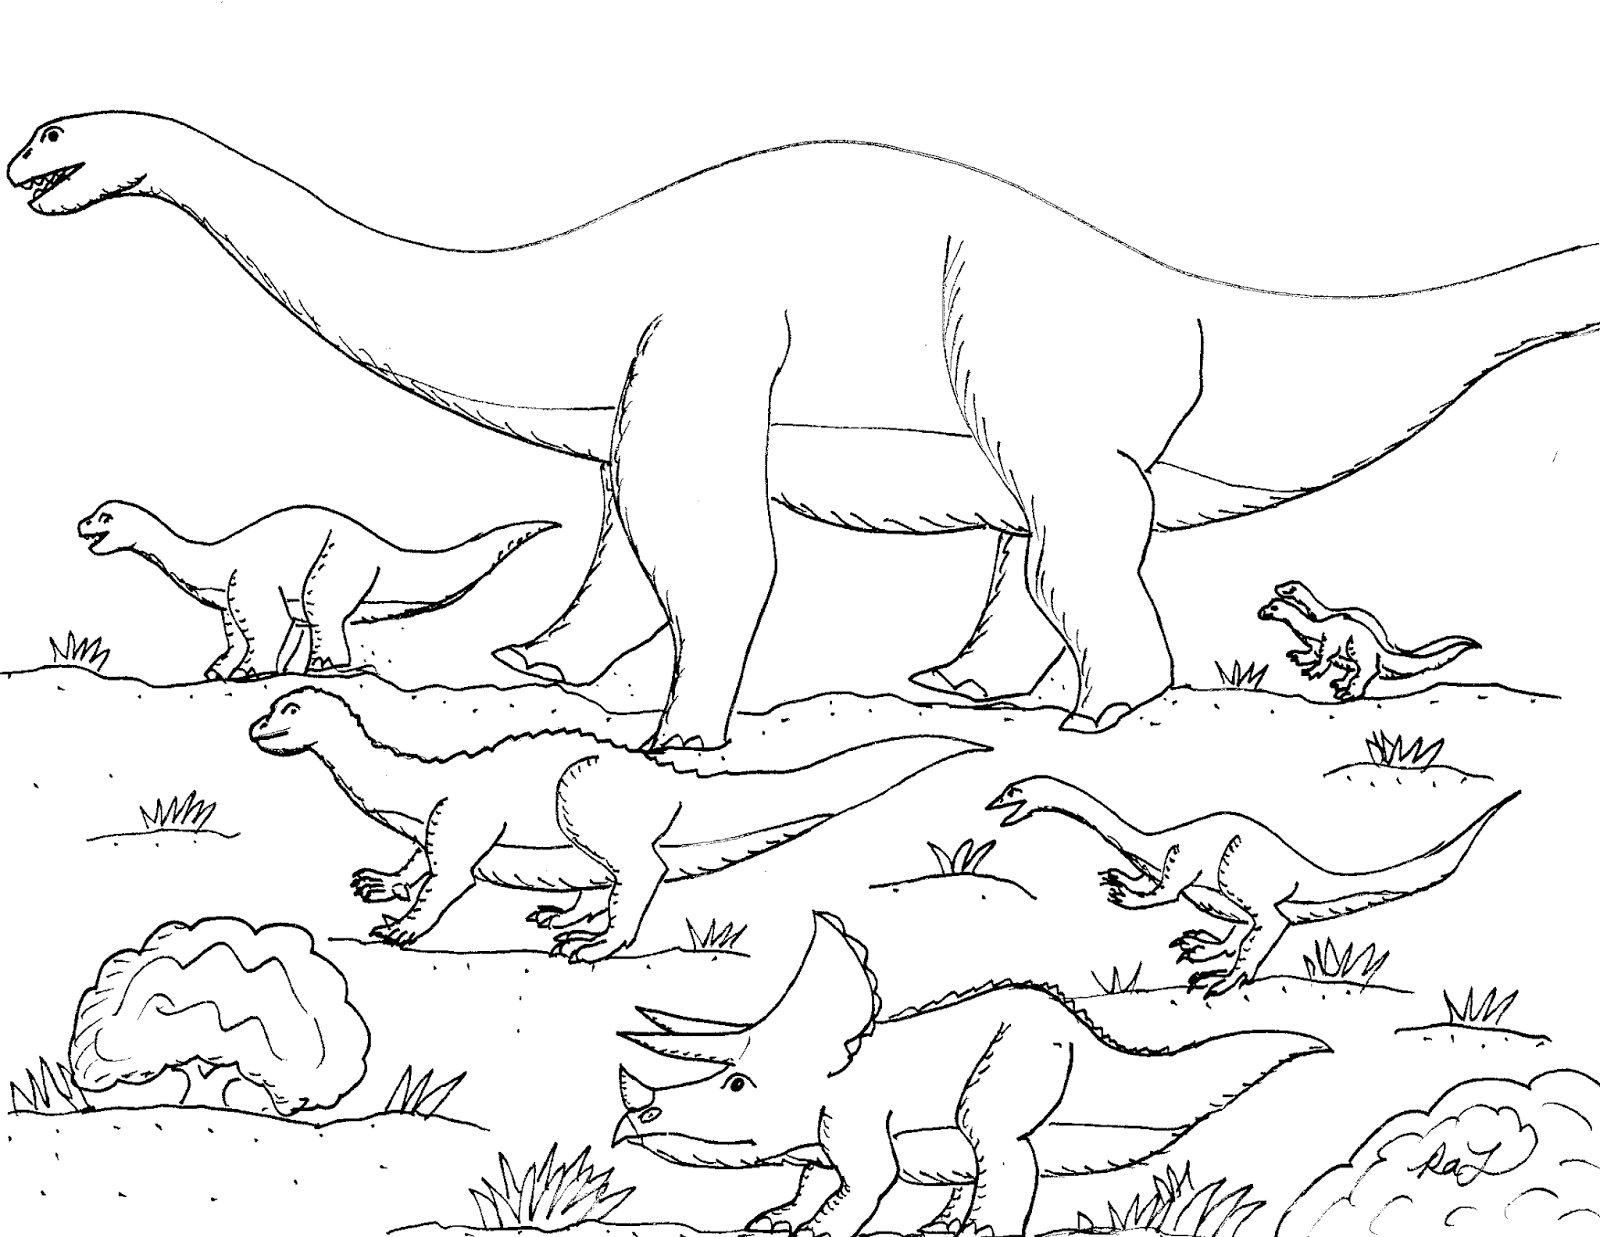 Animal Track Coloring Pages at GetDrawings.com | Free for ...